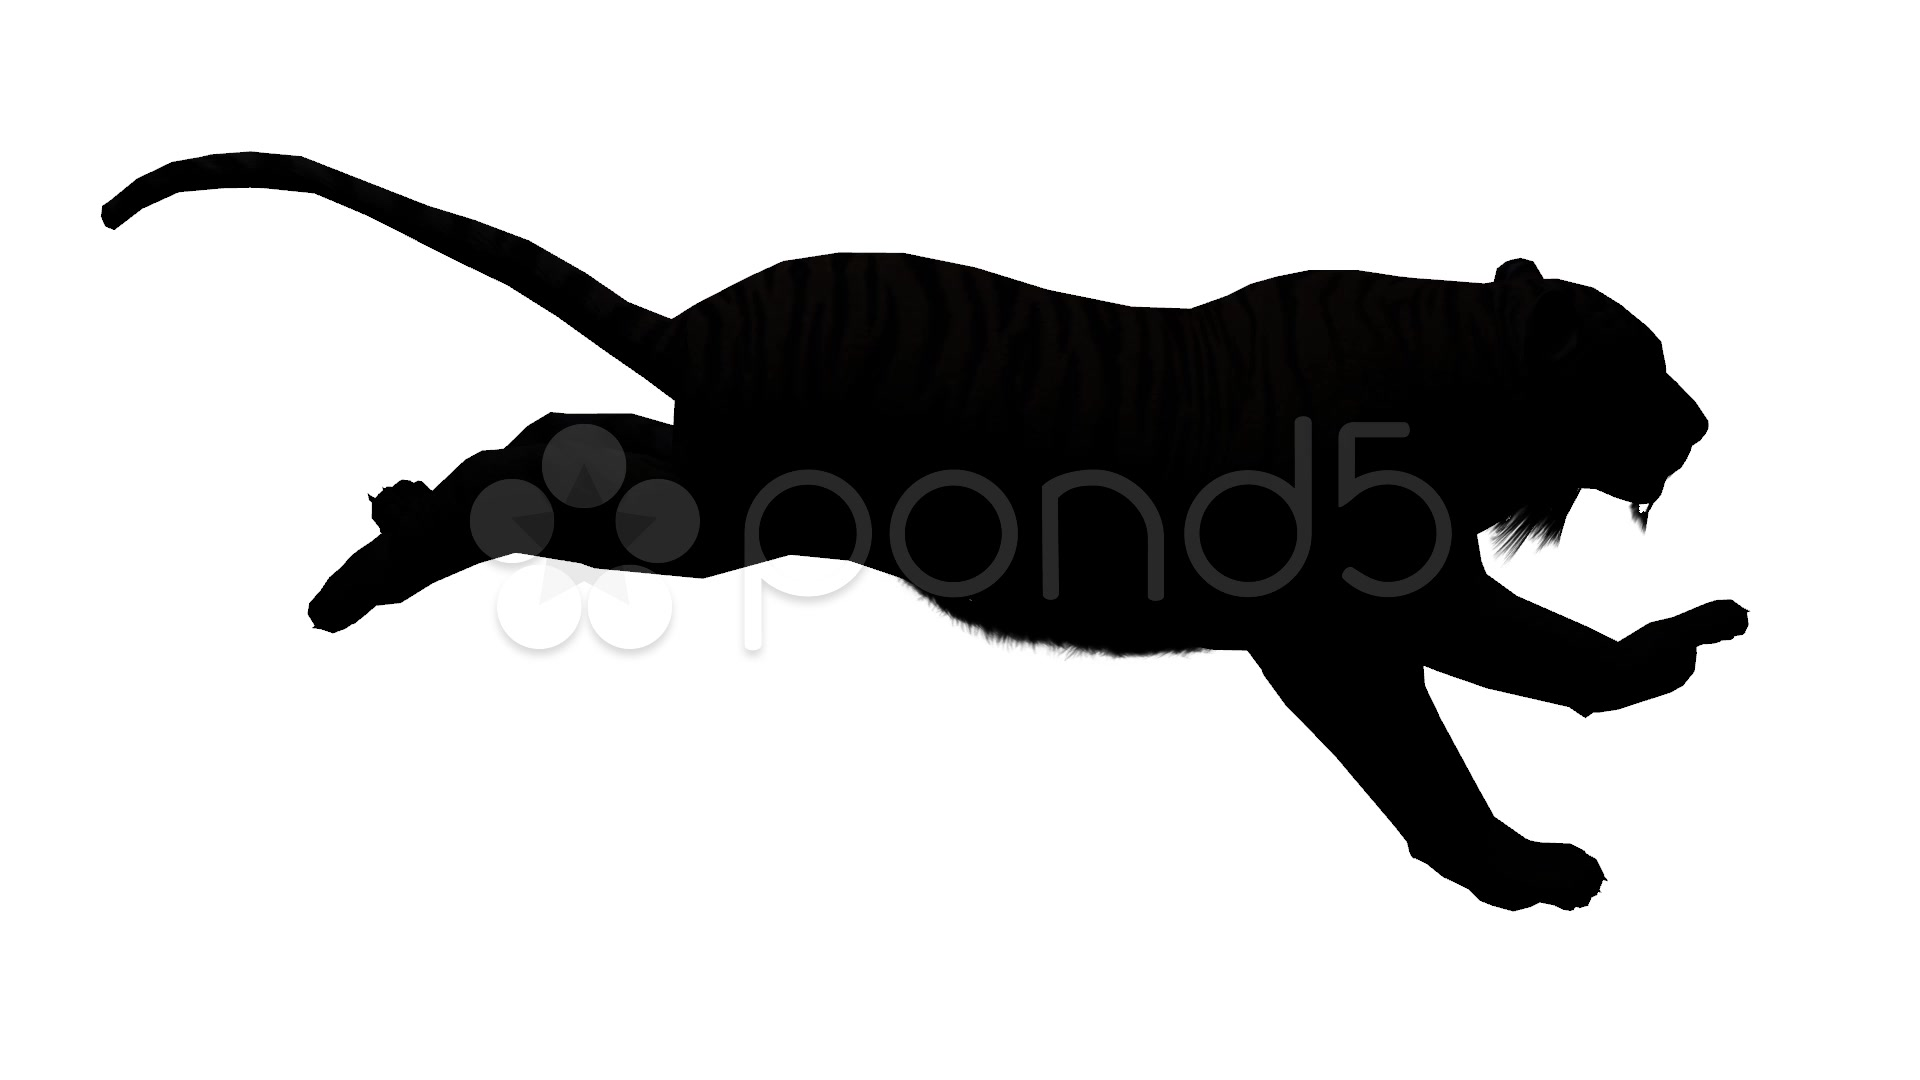 1920x1080 Tiger Running Sketch Silhouette,wildlife Animals Habitat